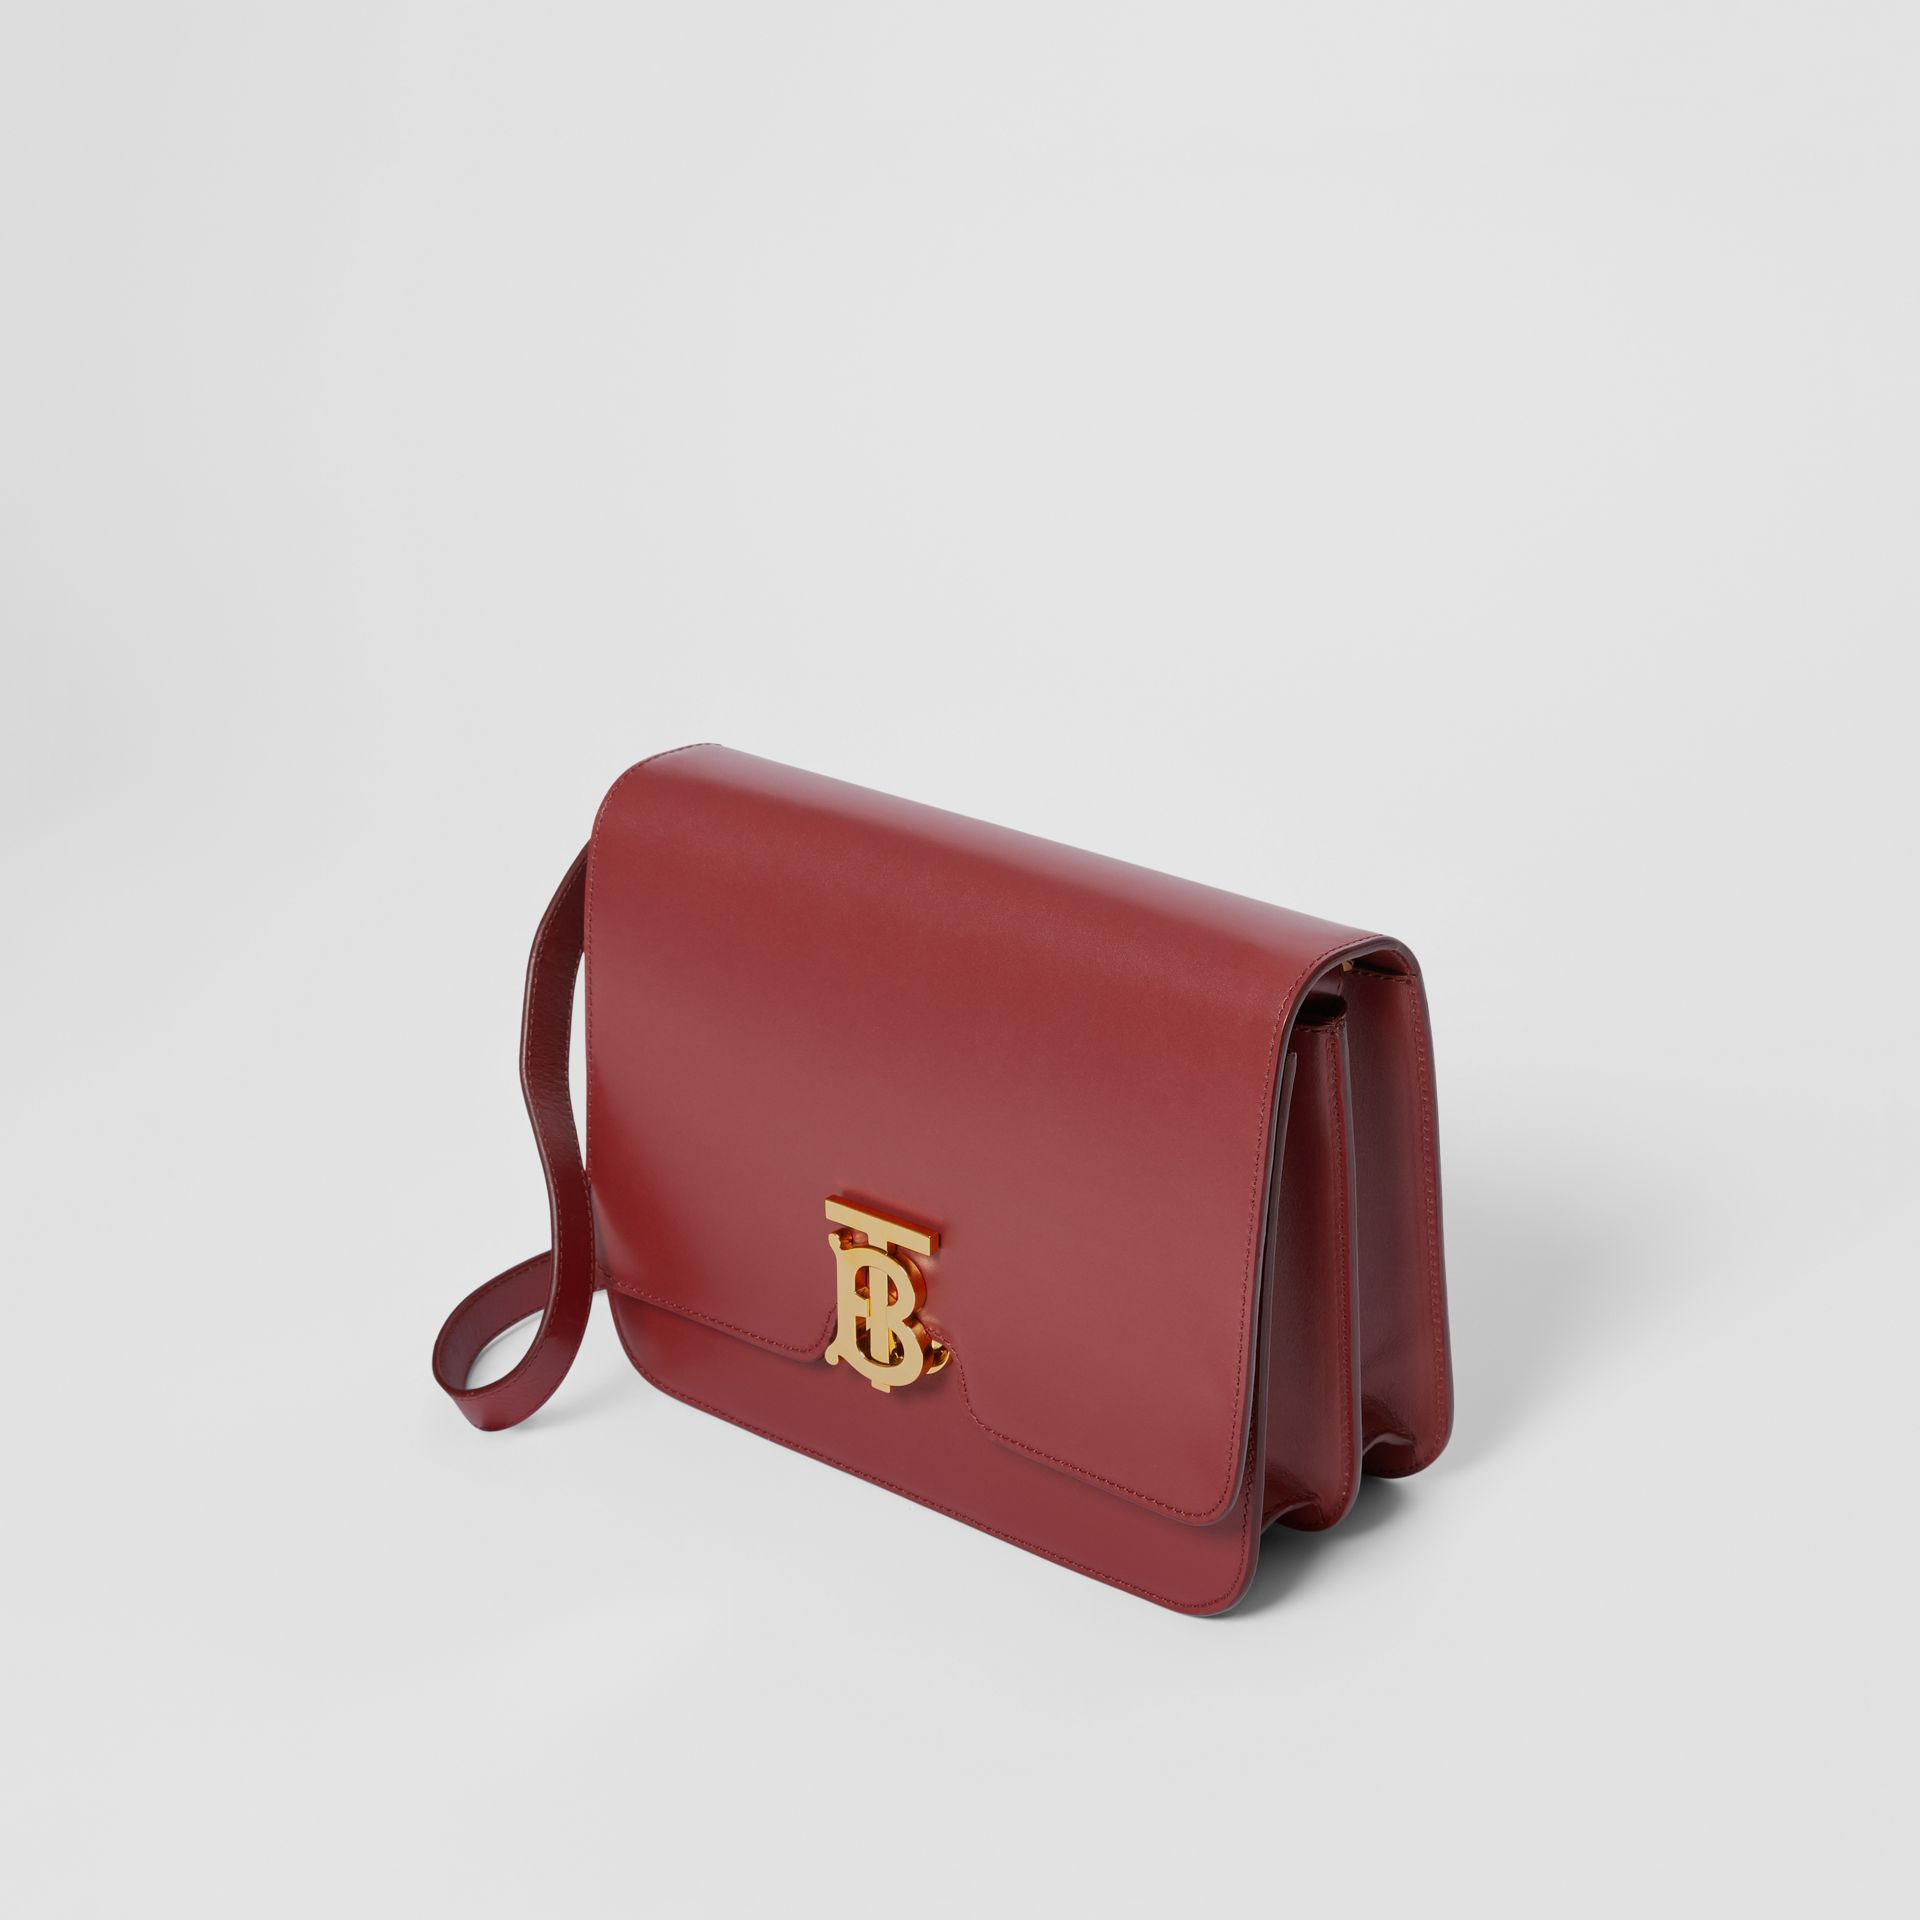 Medium Leather TB Bag in Crimson - Women | Burberry United Kingdom - gallery image 3